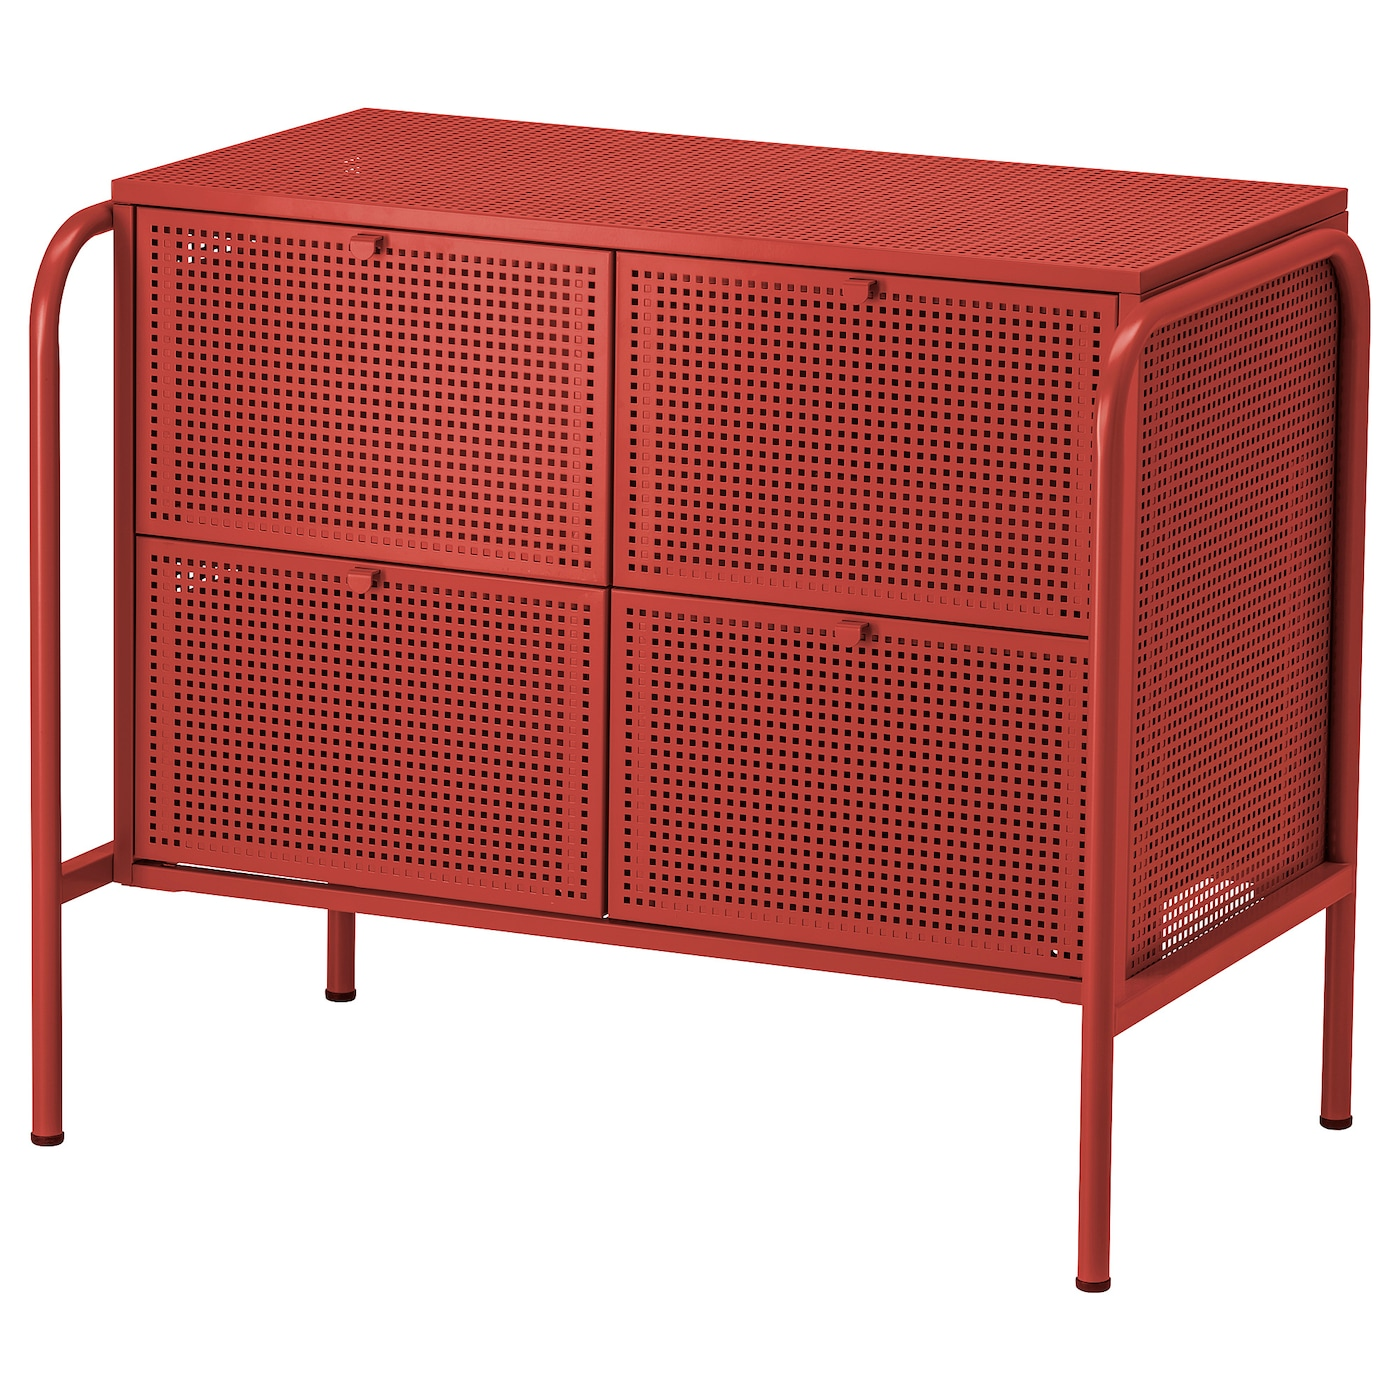 by-chest-of-4-drawers-red__0729045_PE738504_S5